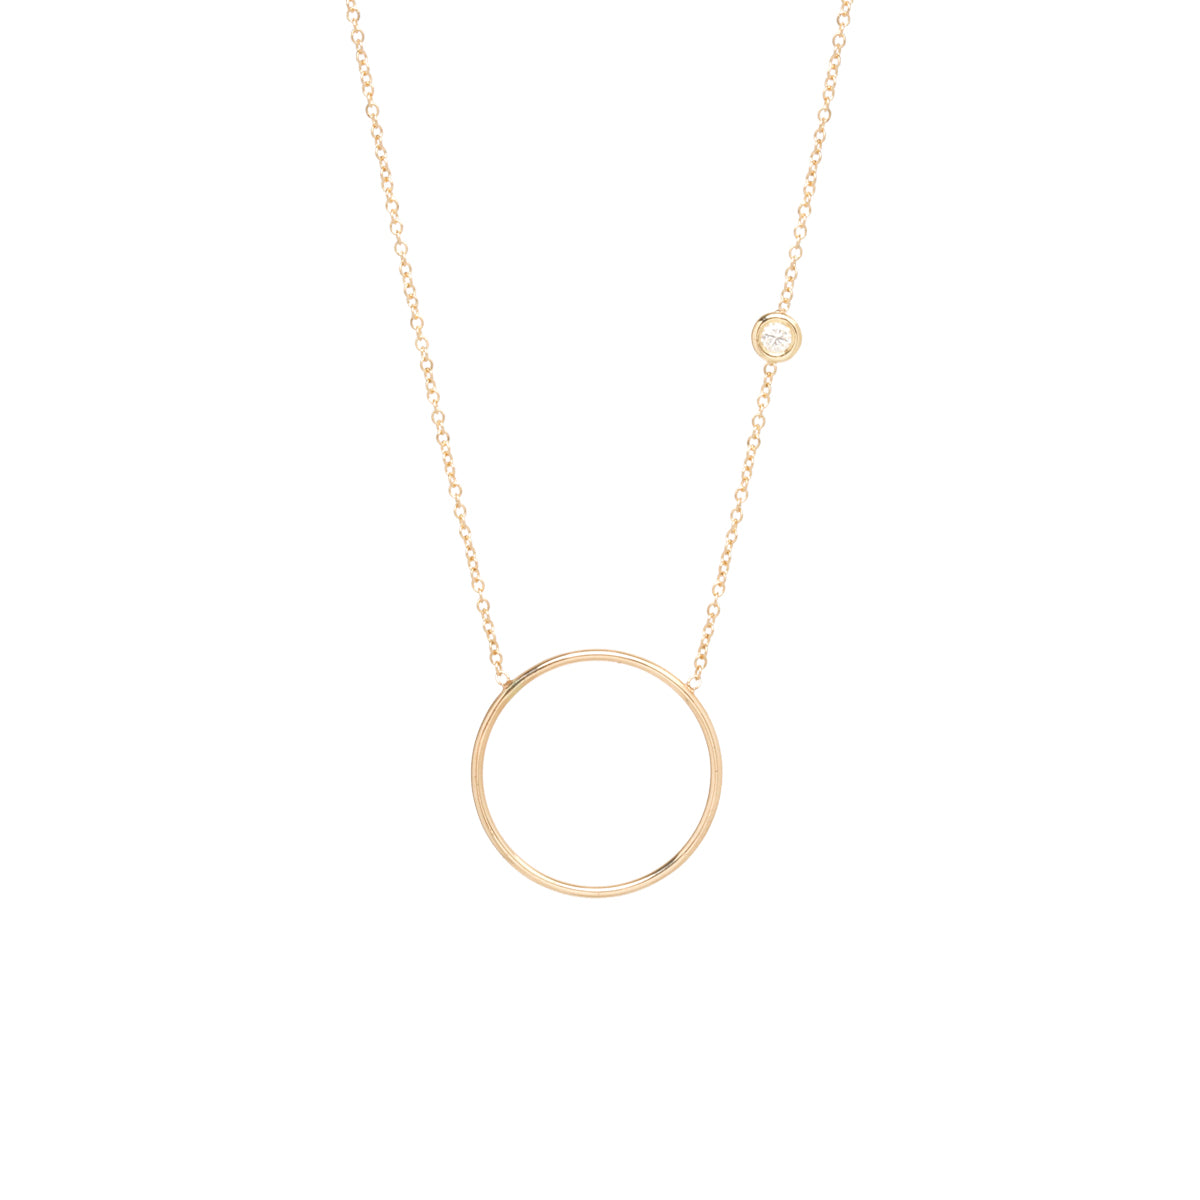 14k medium circle necklace with floating diamond